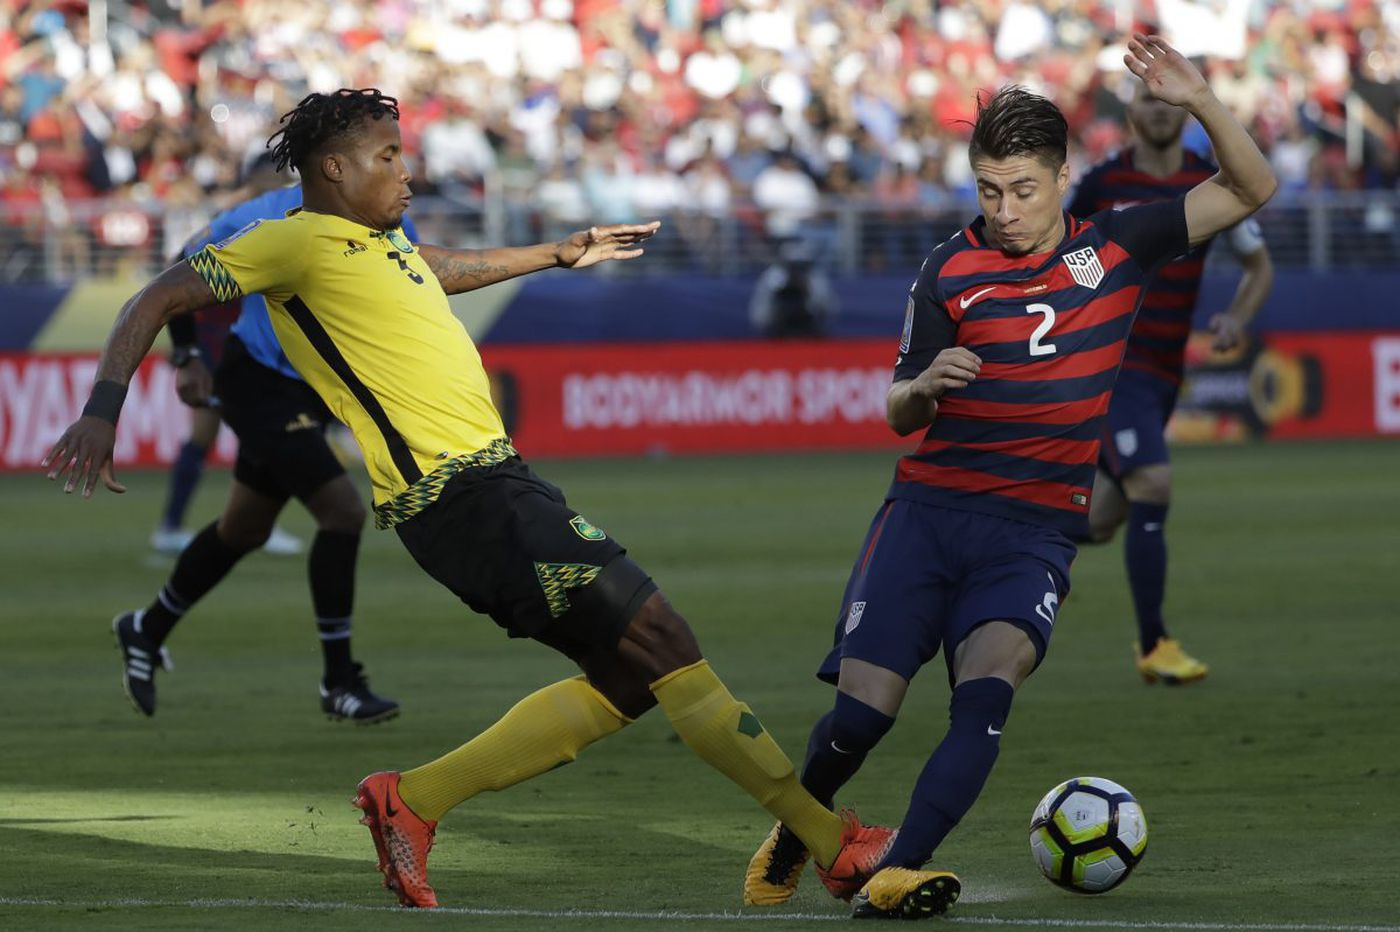 Jorge Villafaña happy to help U.S. soccer team after Mexican title, gunpoint robbery